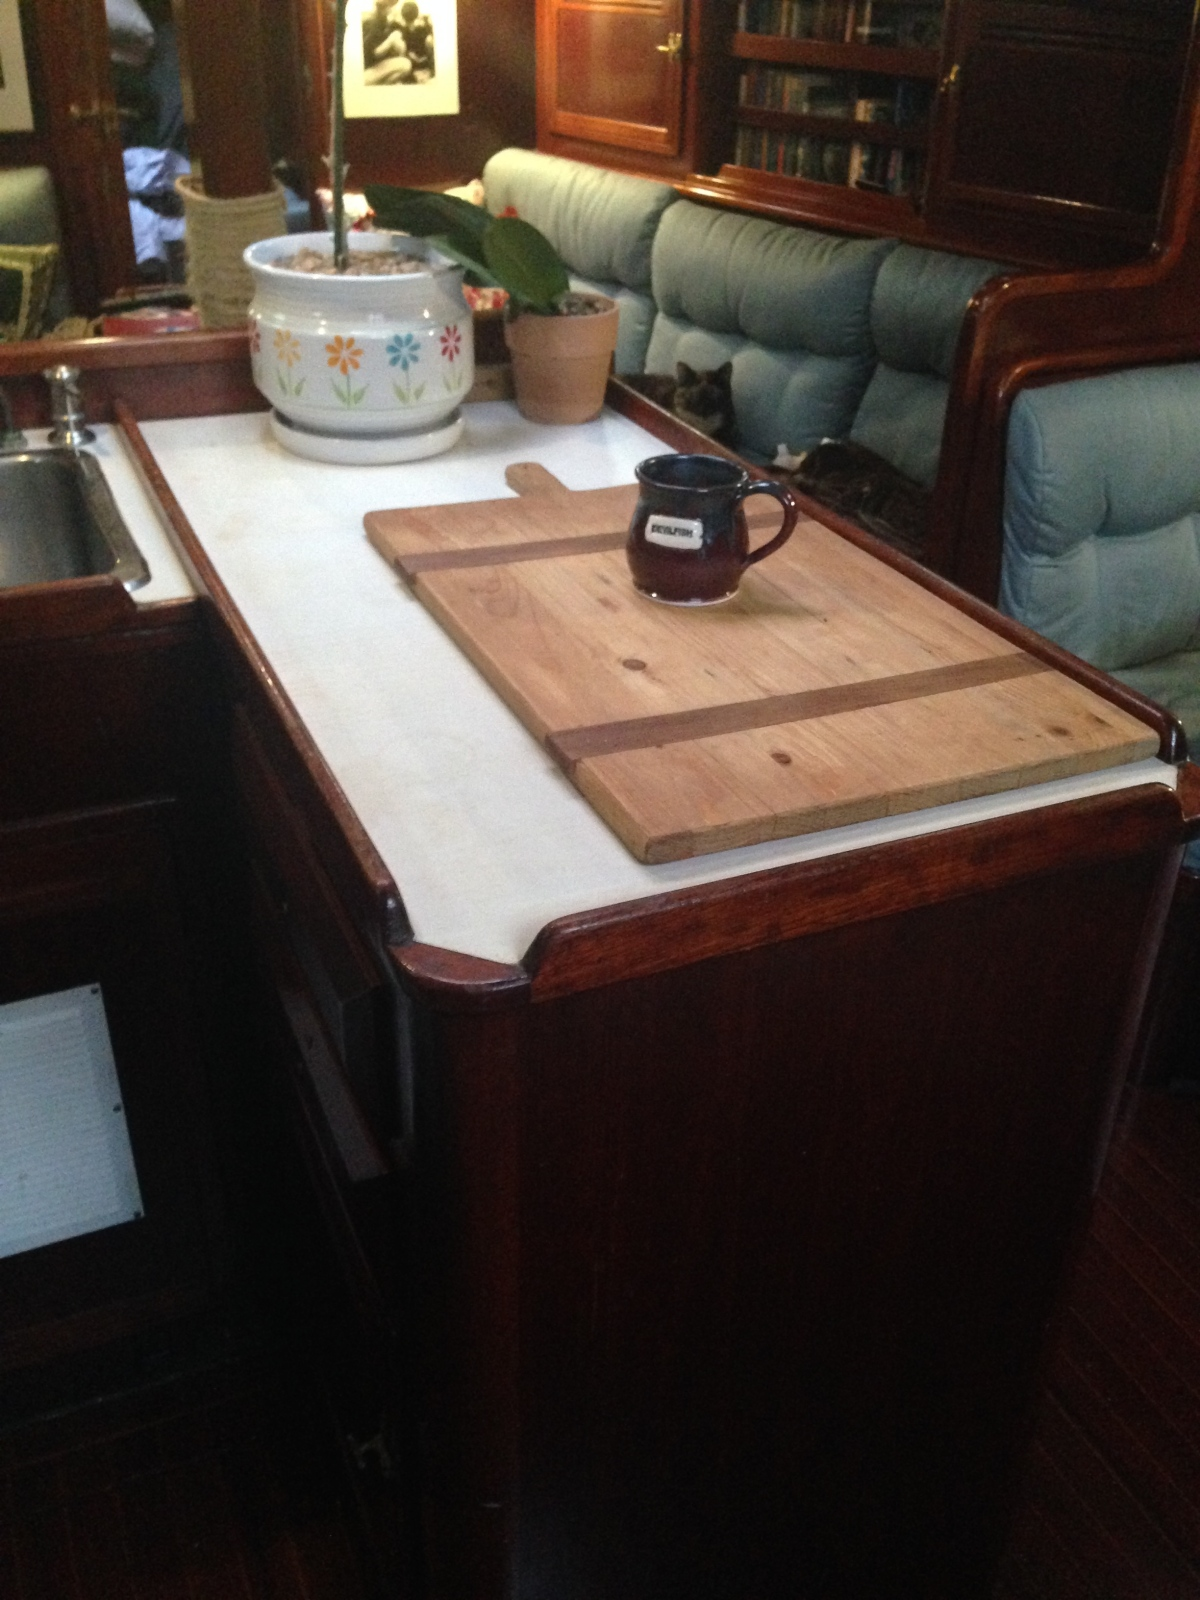 Galley tour – part 1